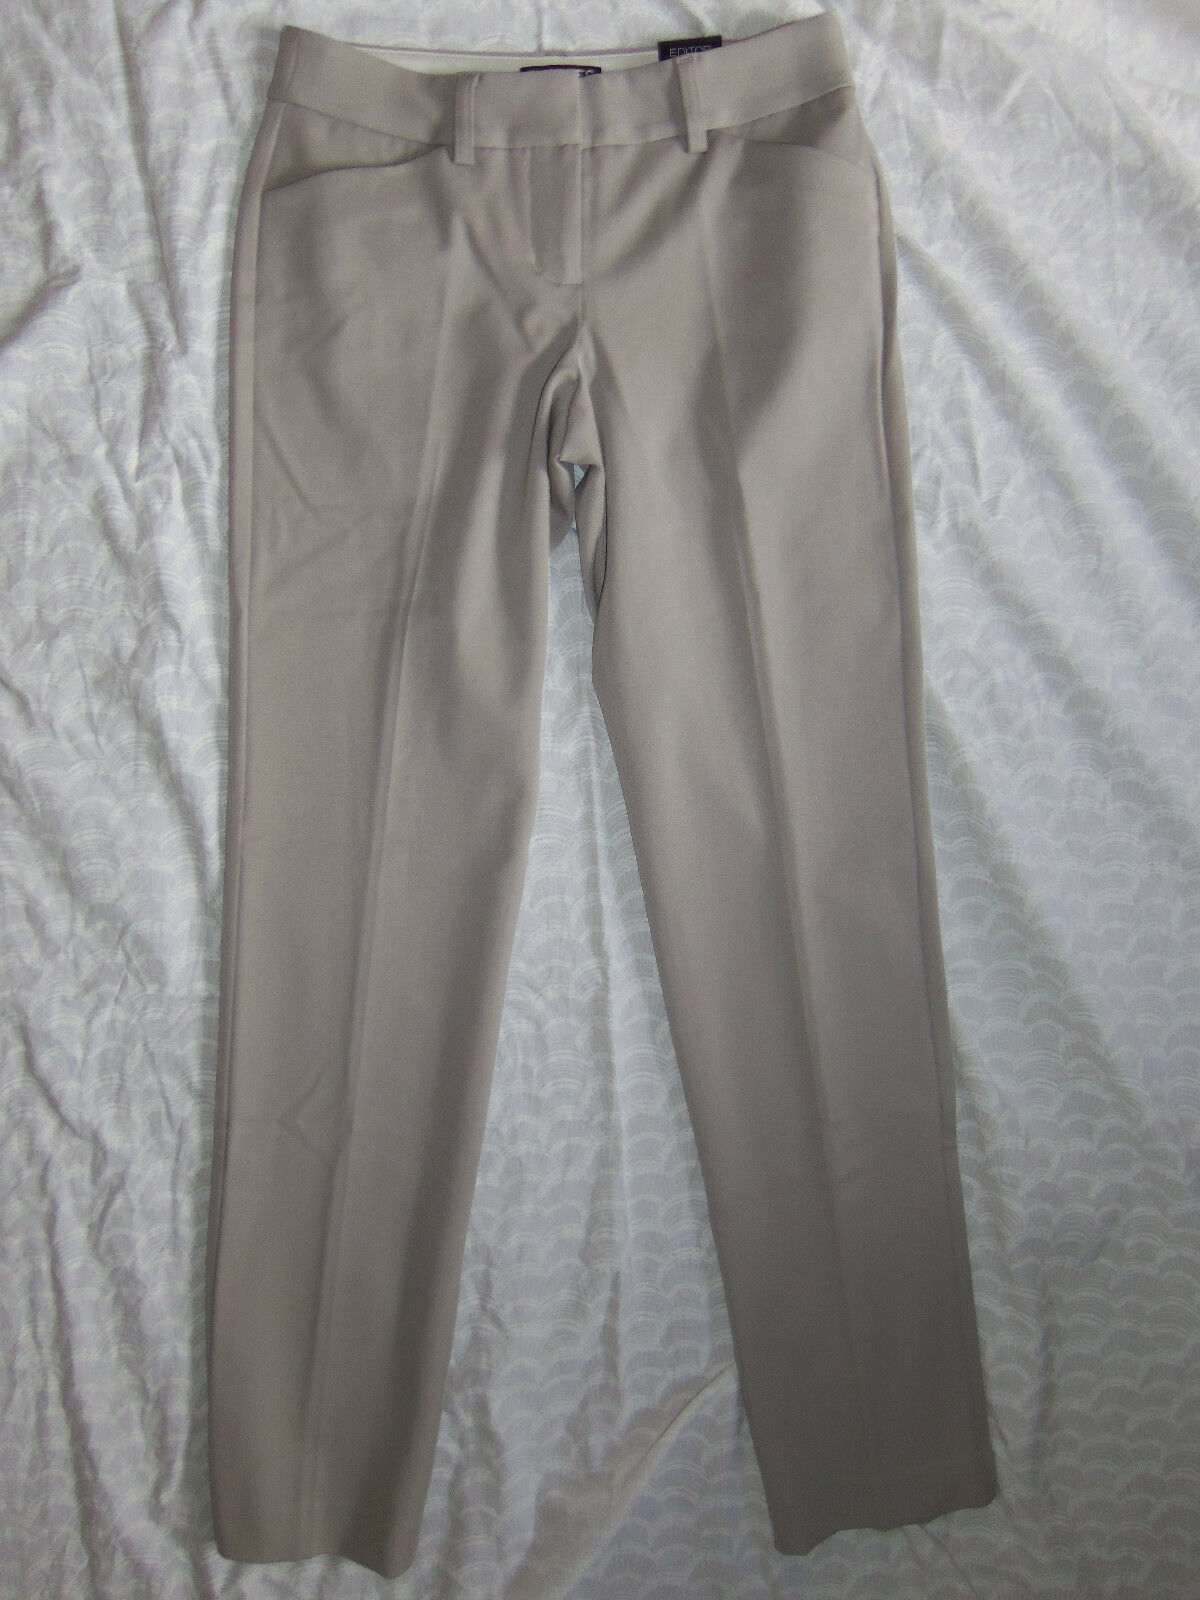 Express Editor Slim, Low Rise, Größe 00 Regular, New with Tags, Retail  69.90